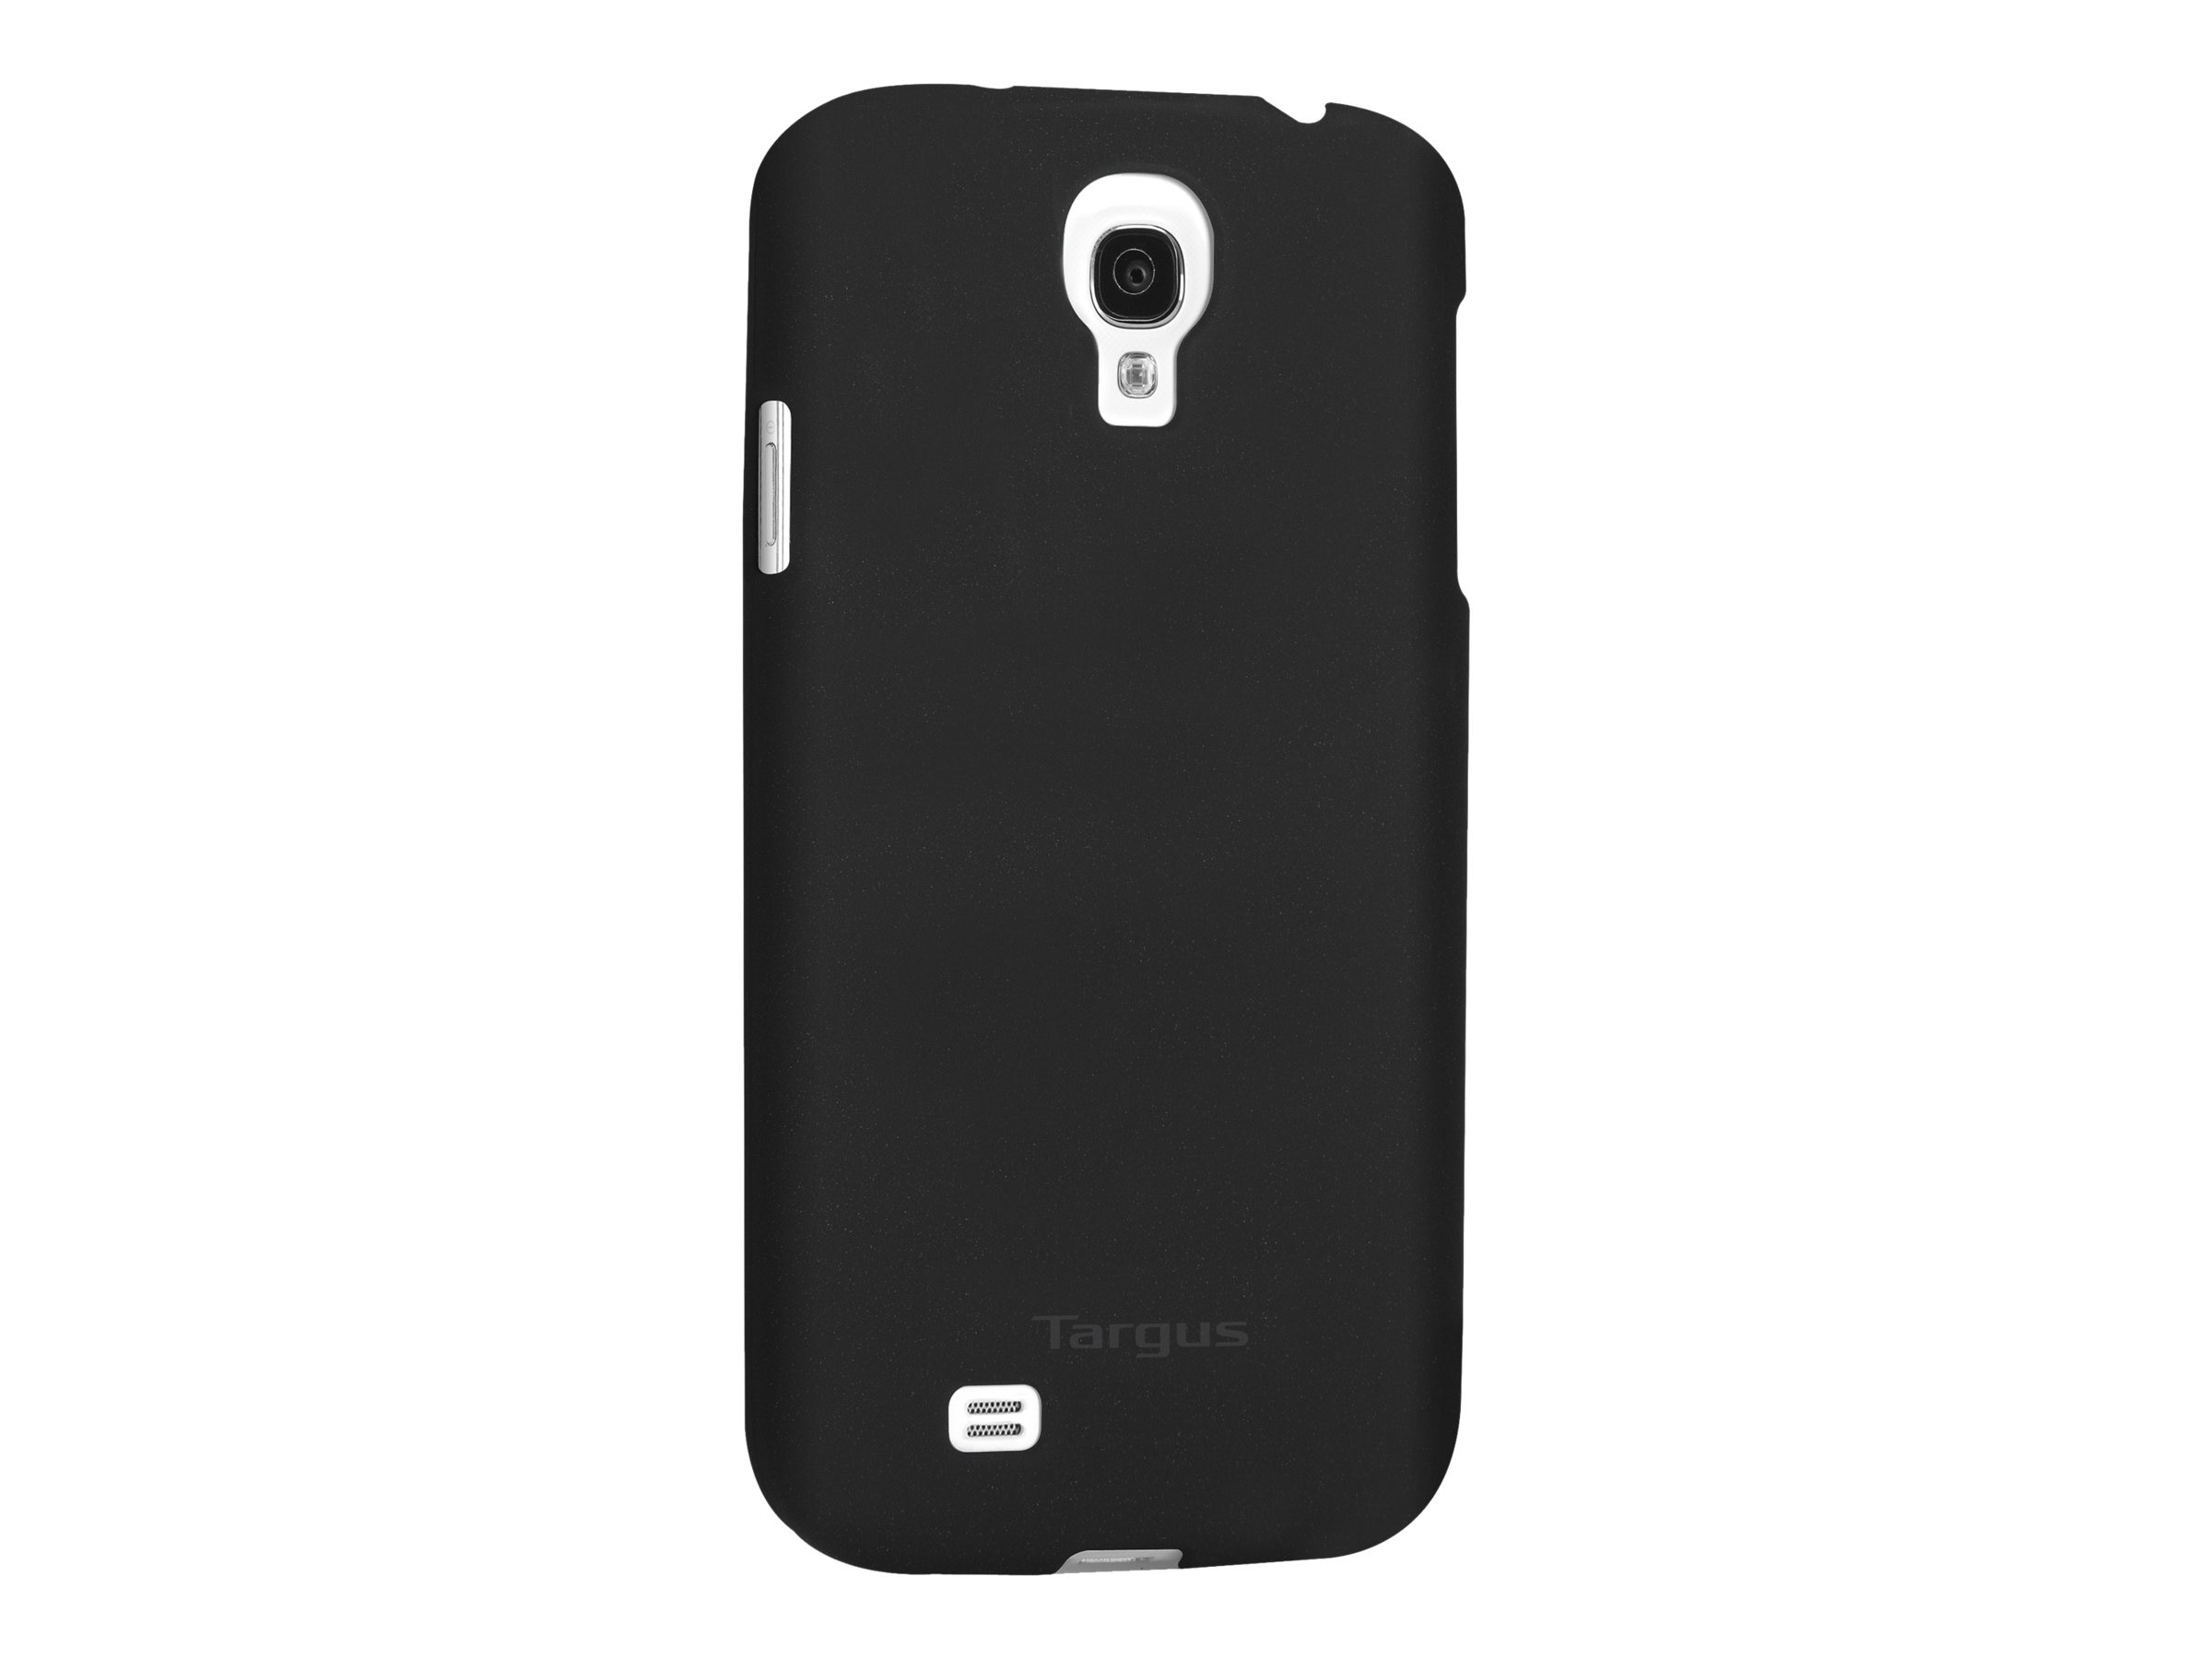 Targus Samsung Galaxy S4 Snap  shell, TFD037US